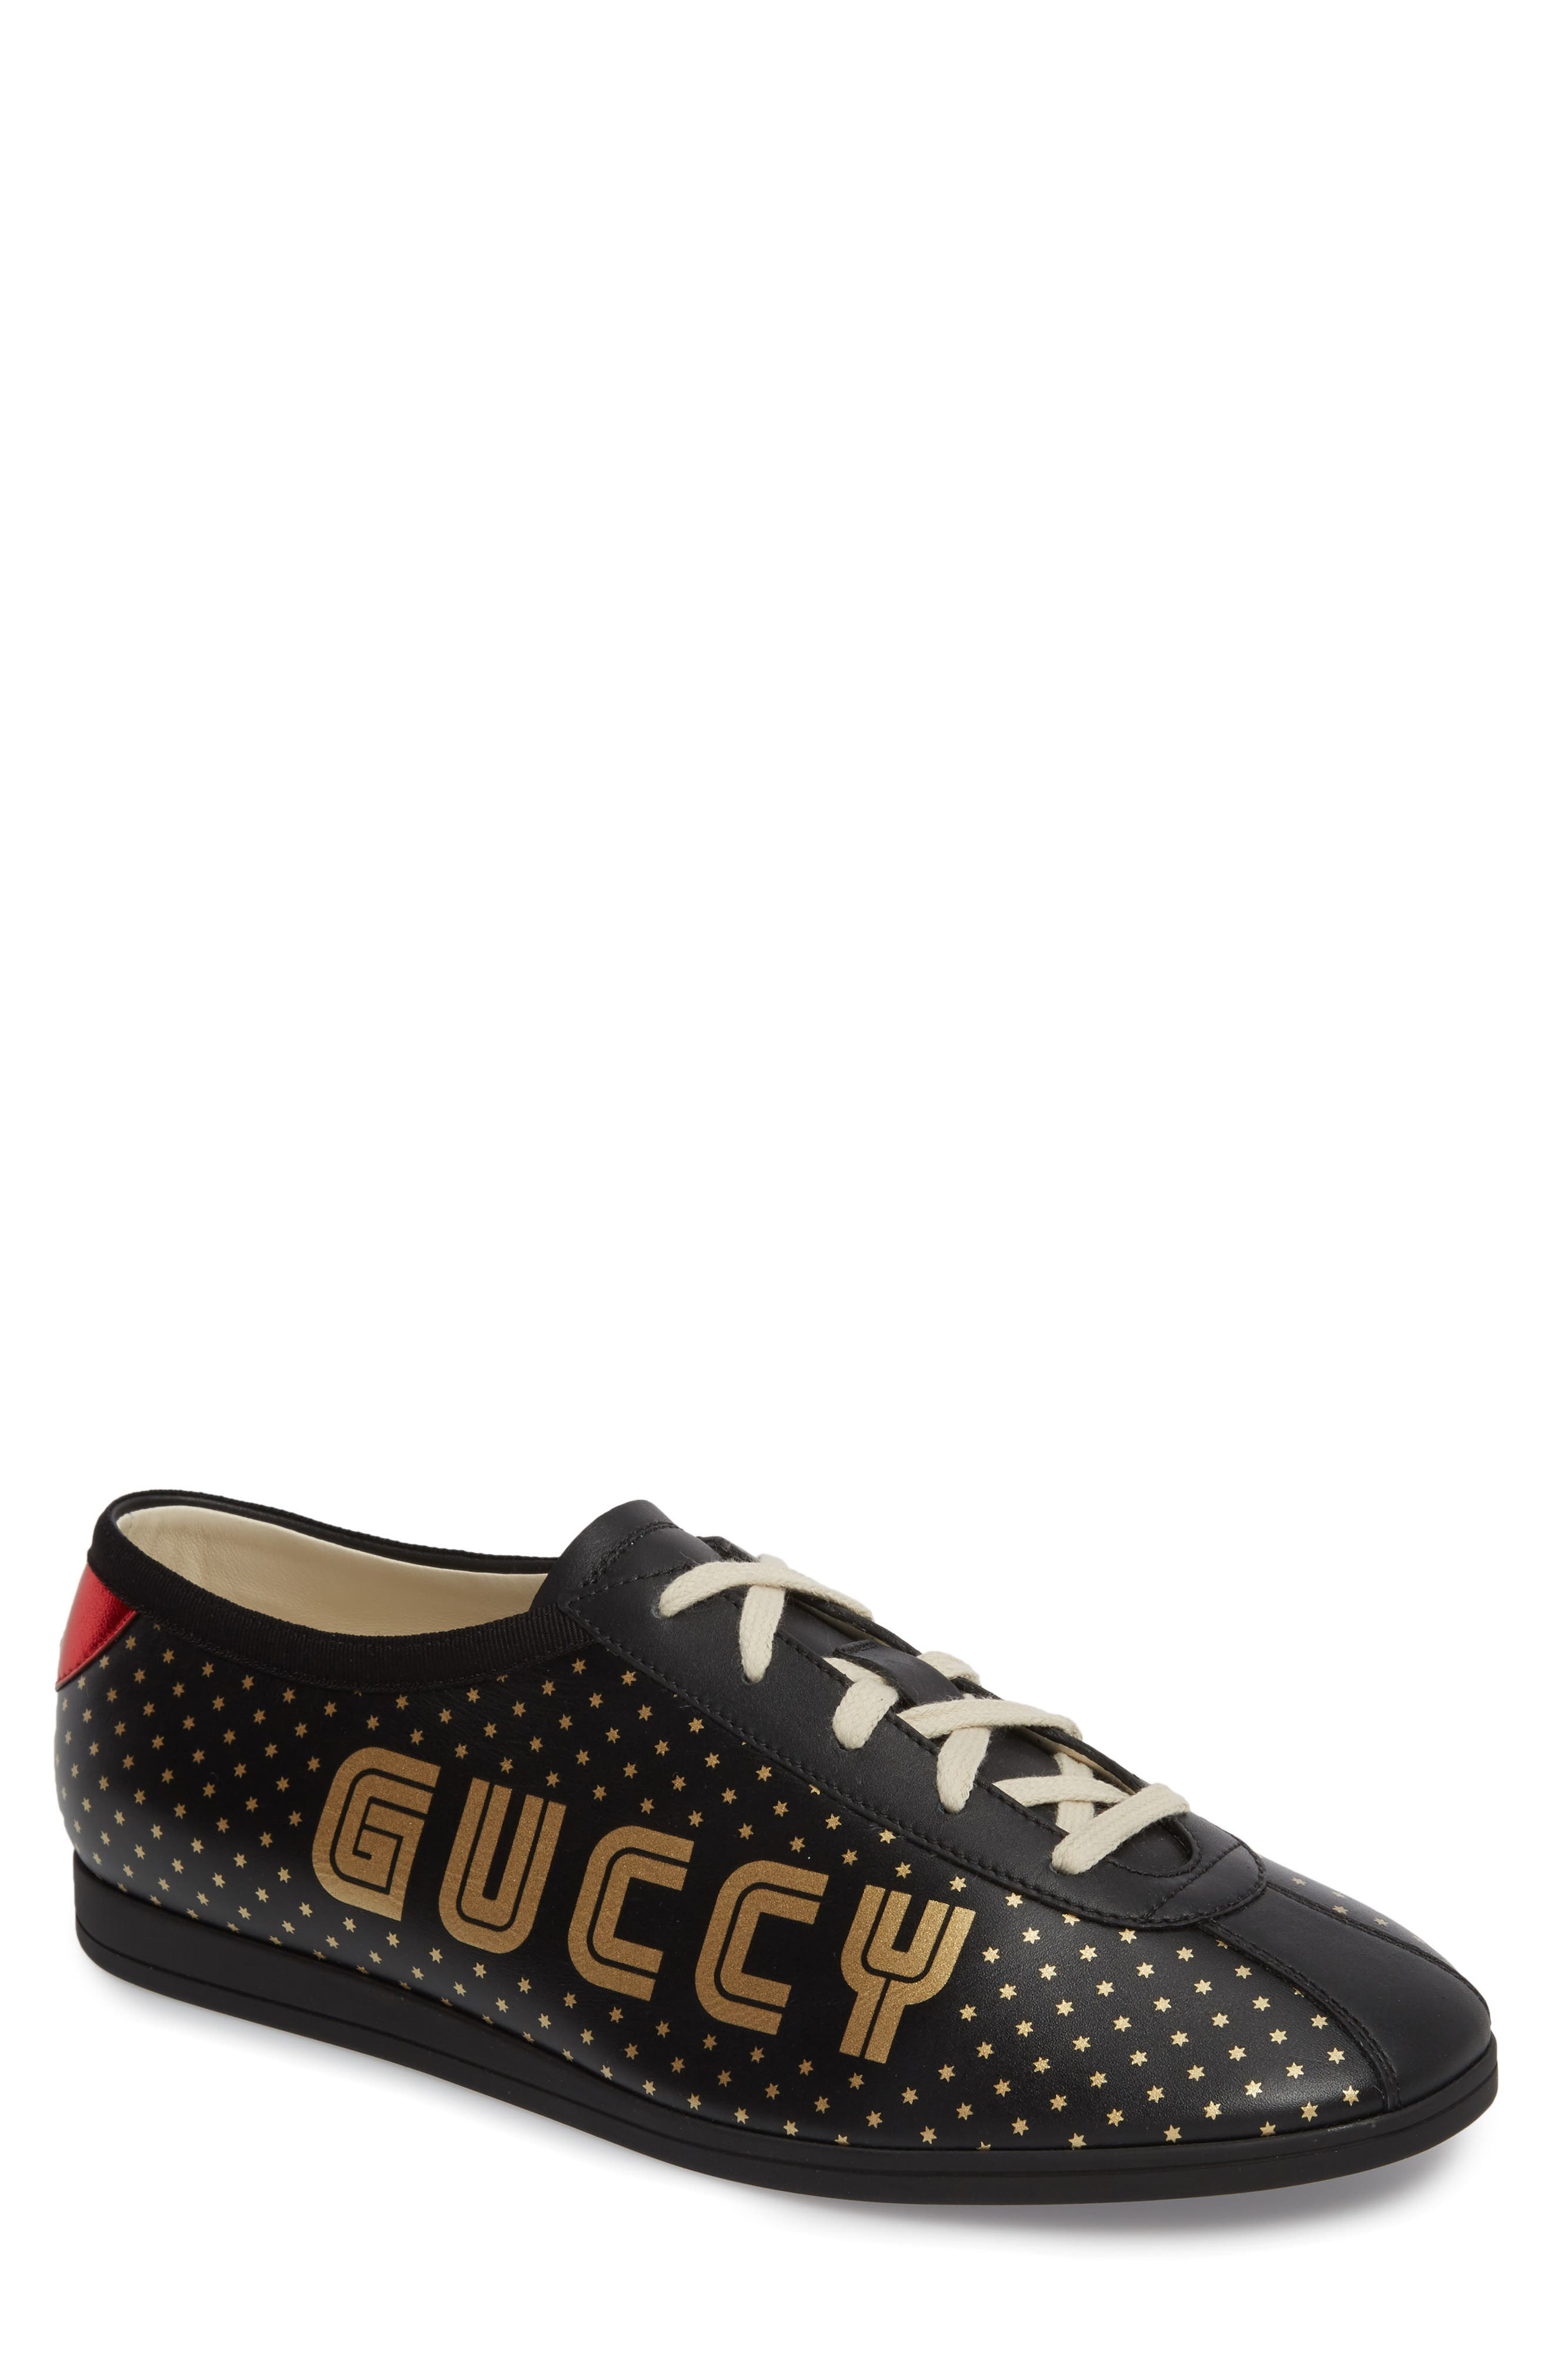 Gucci Falacer Guccy Low Top Sneaker (Men)